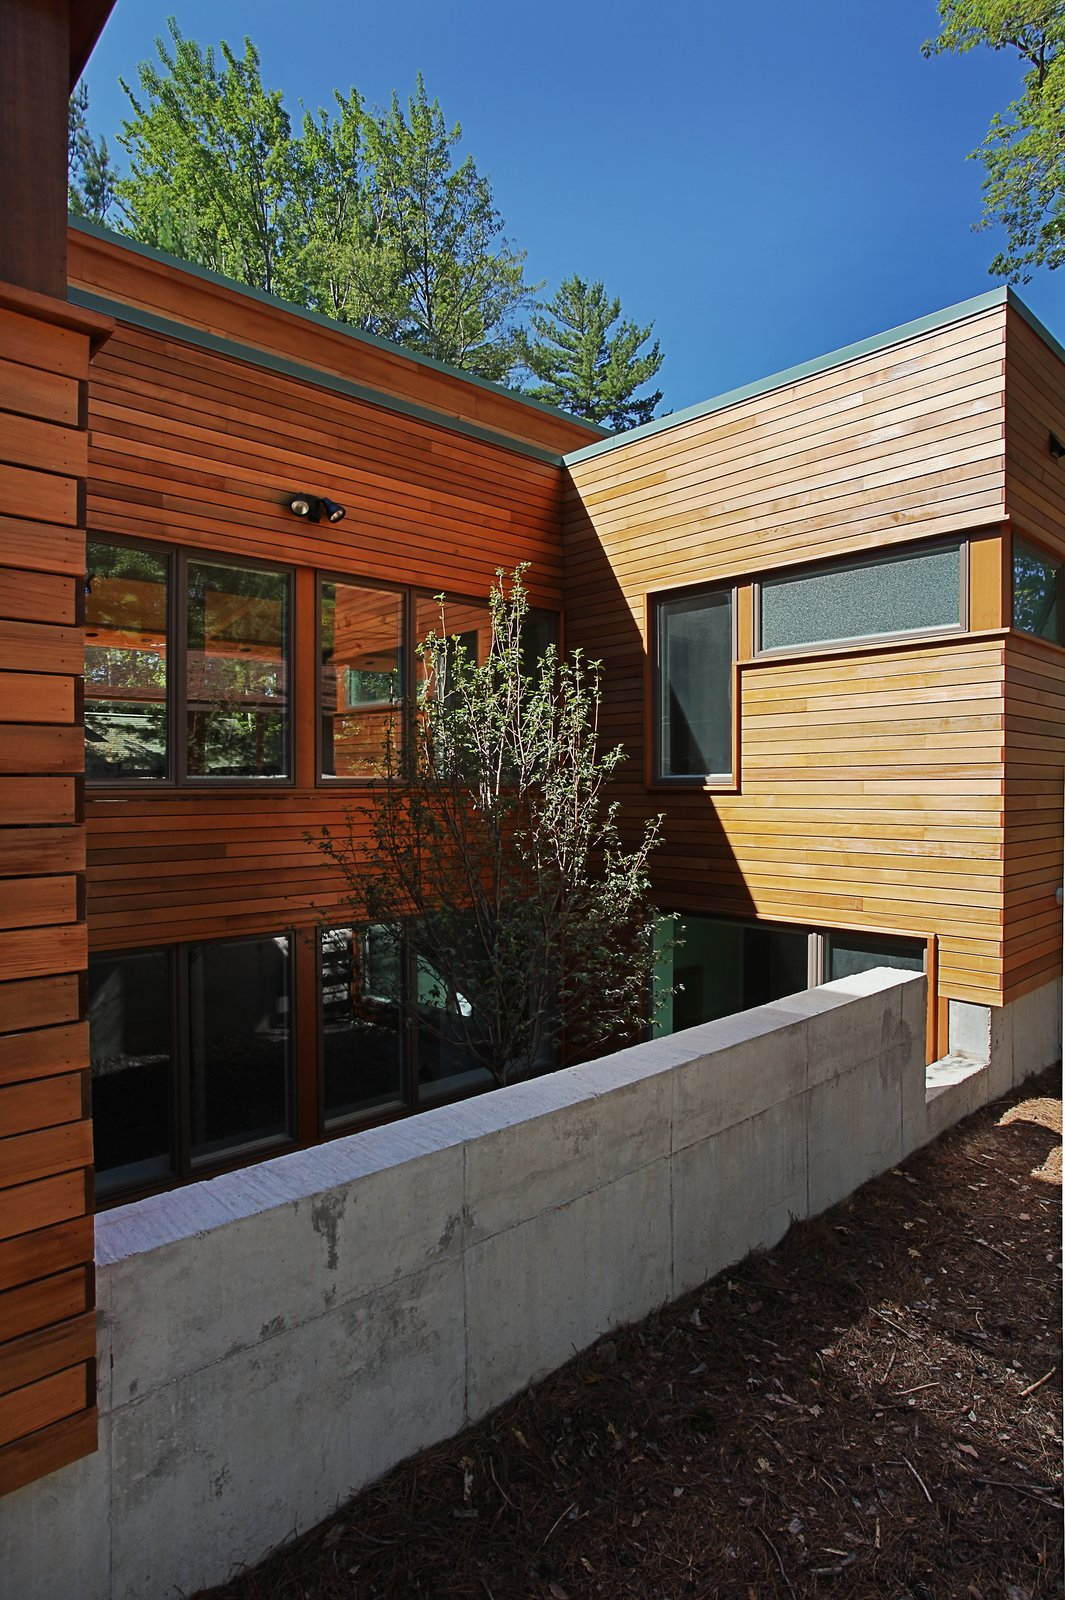 Rear courtyard with tree and basement bedroom windows